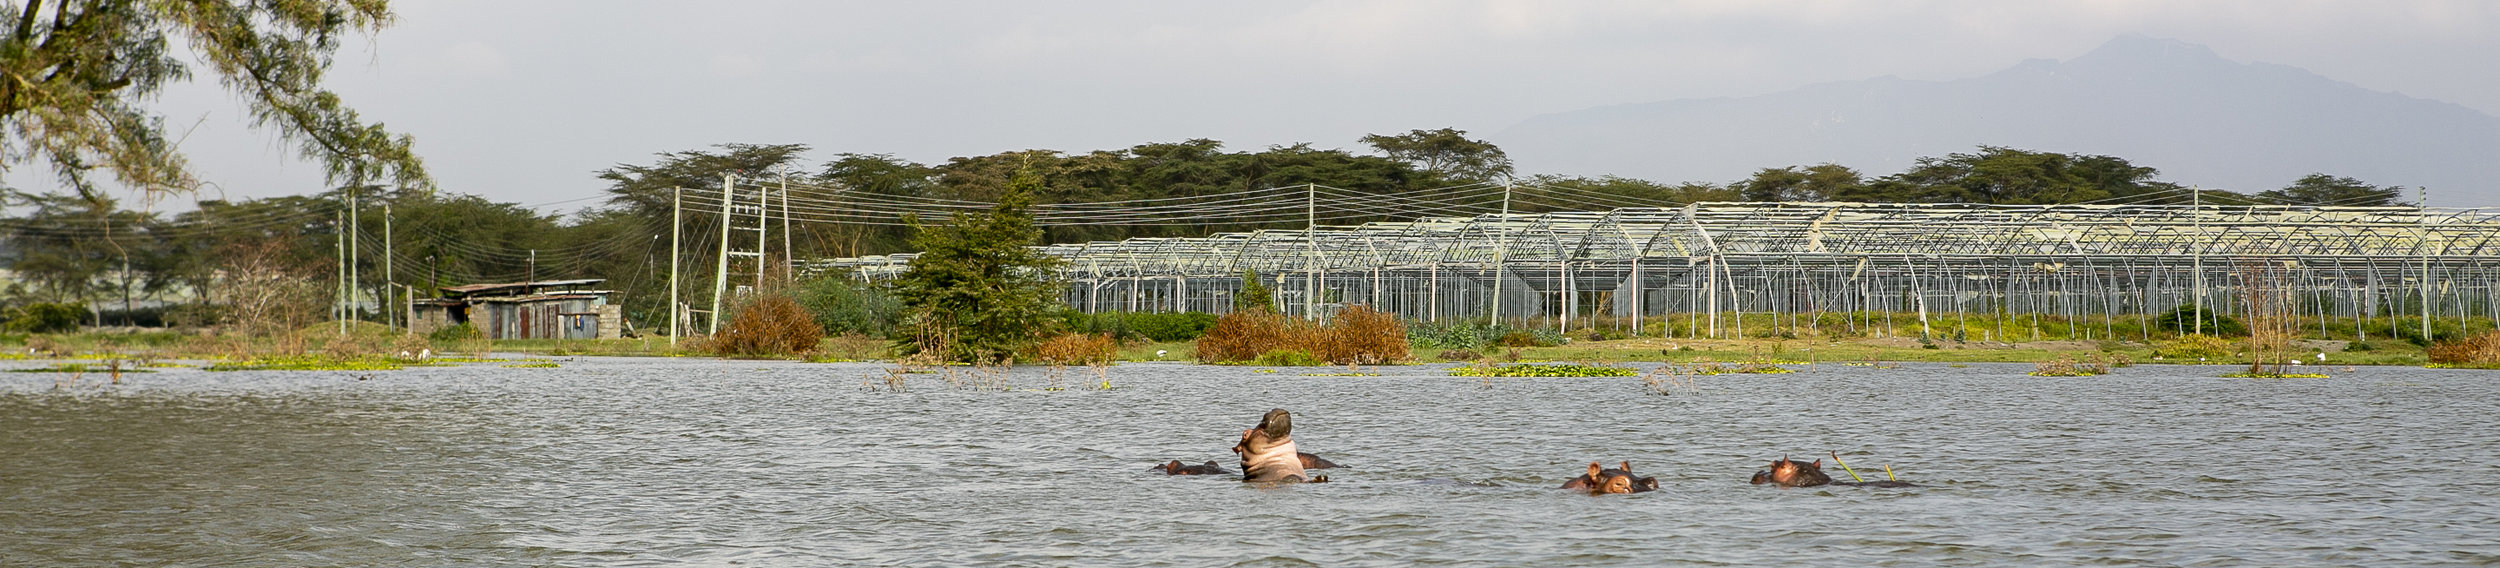 African Adventure - 20 July '18 - Nakuru National Park to Lake Naivasha - 081.JPG